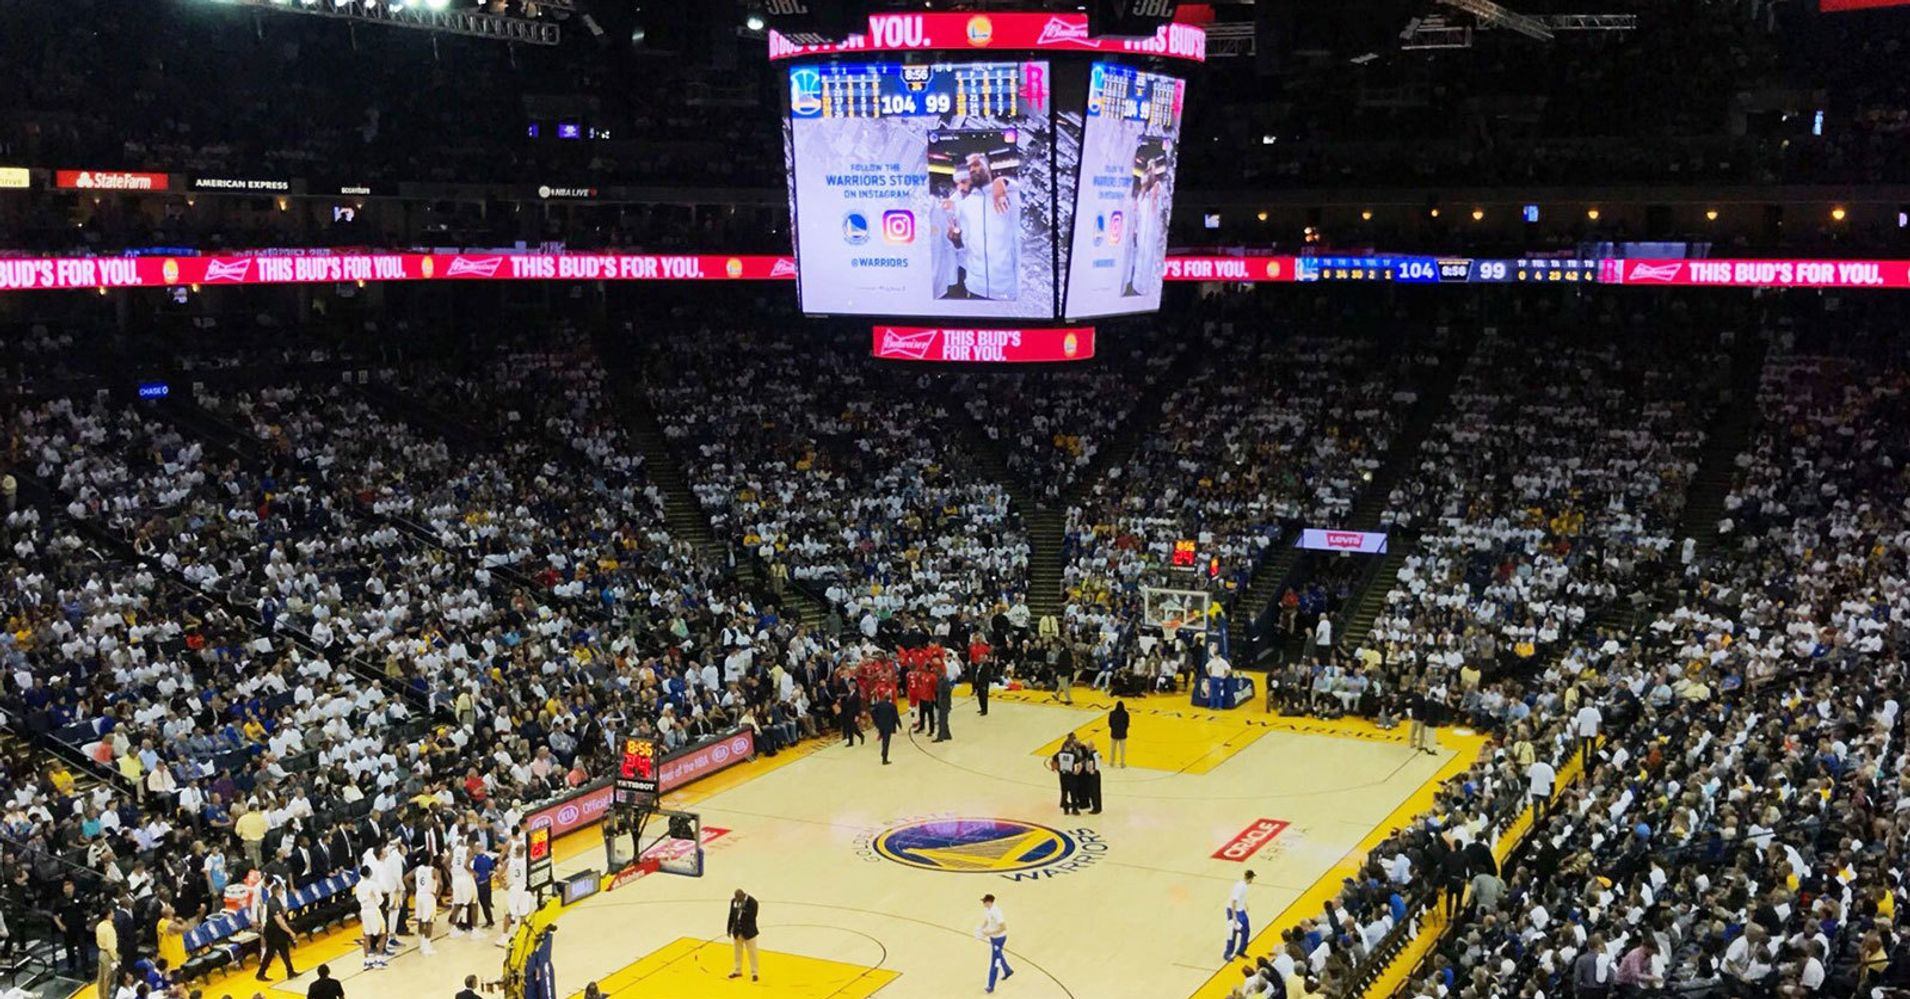 The Impact of Live Social Content on Sports Marketing